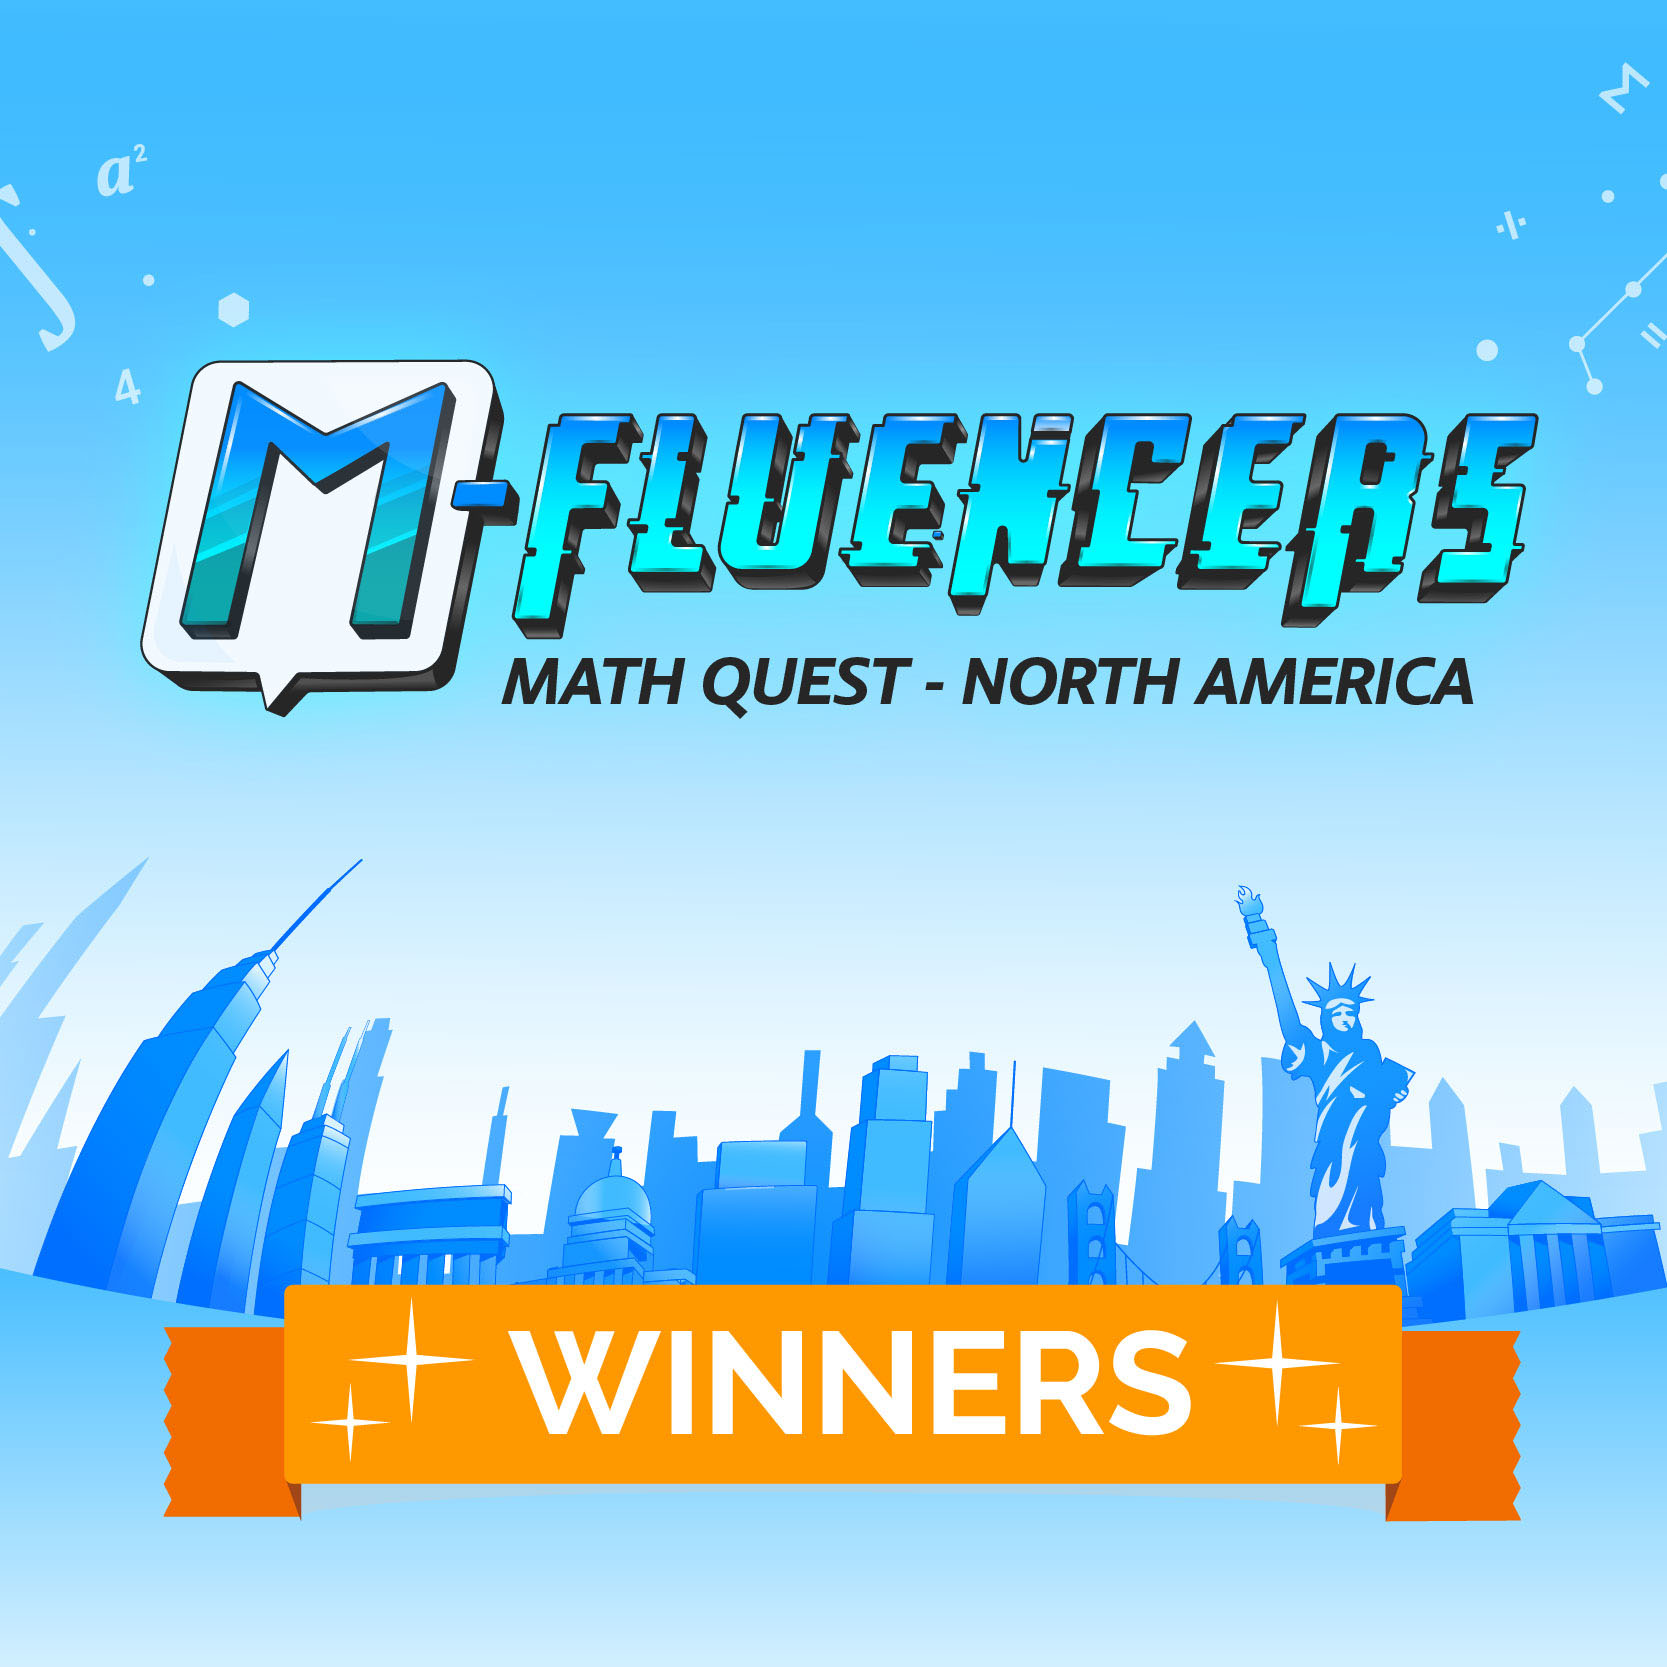 M-Fluencers North America: The Results Are In!